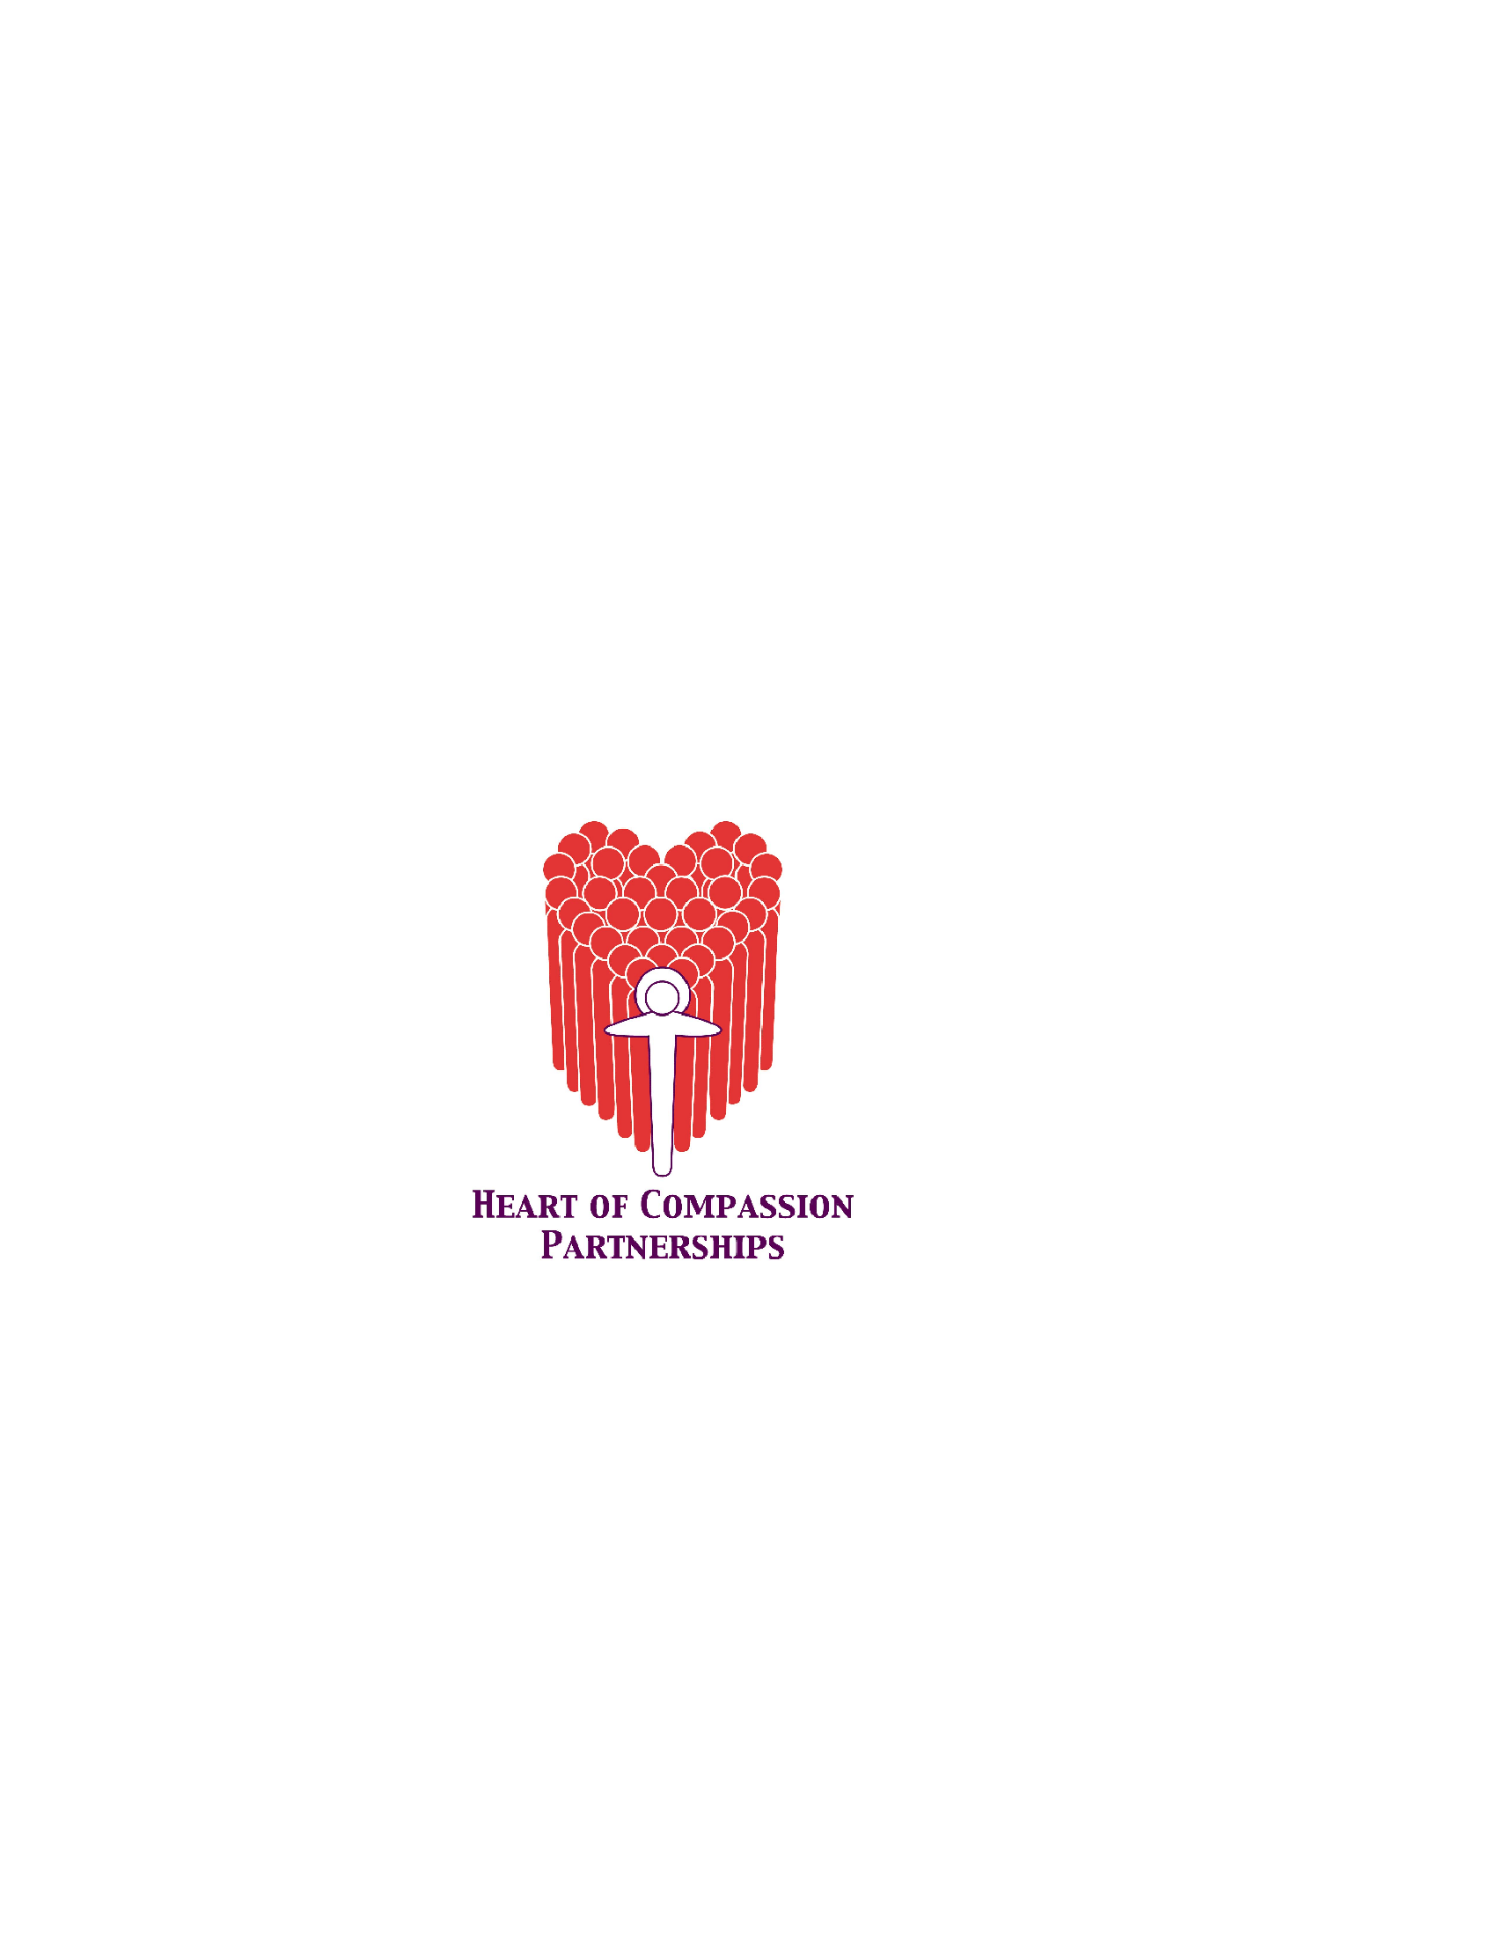 Heart of Compassion Partnerships,Inc